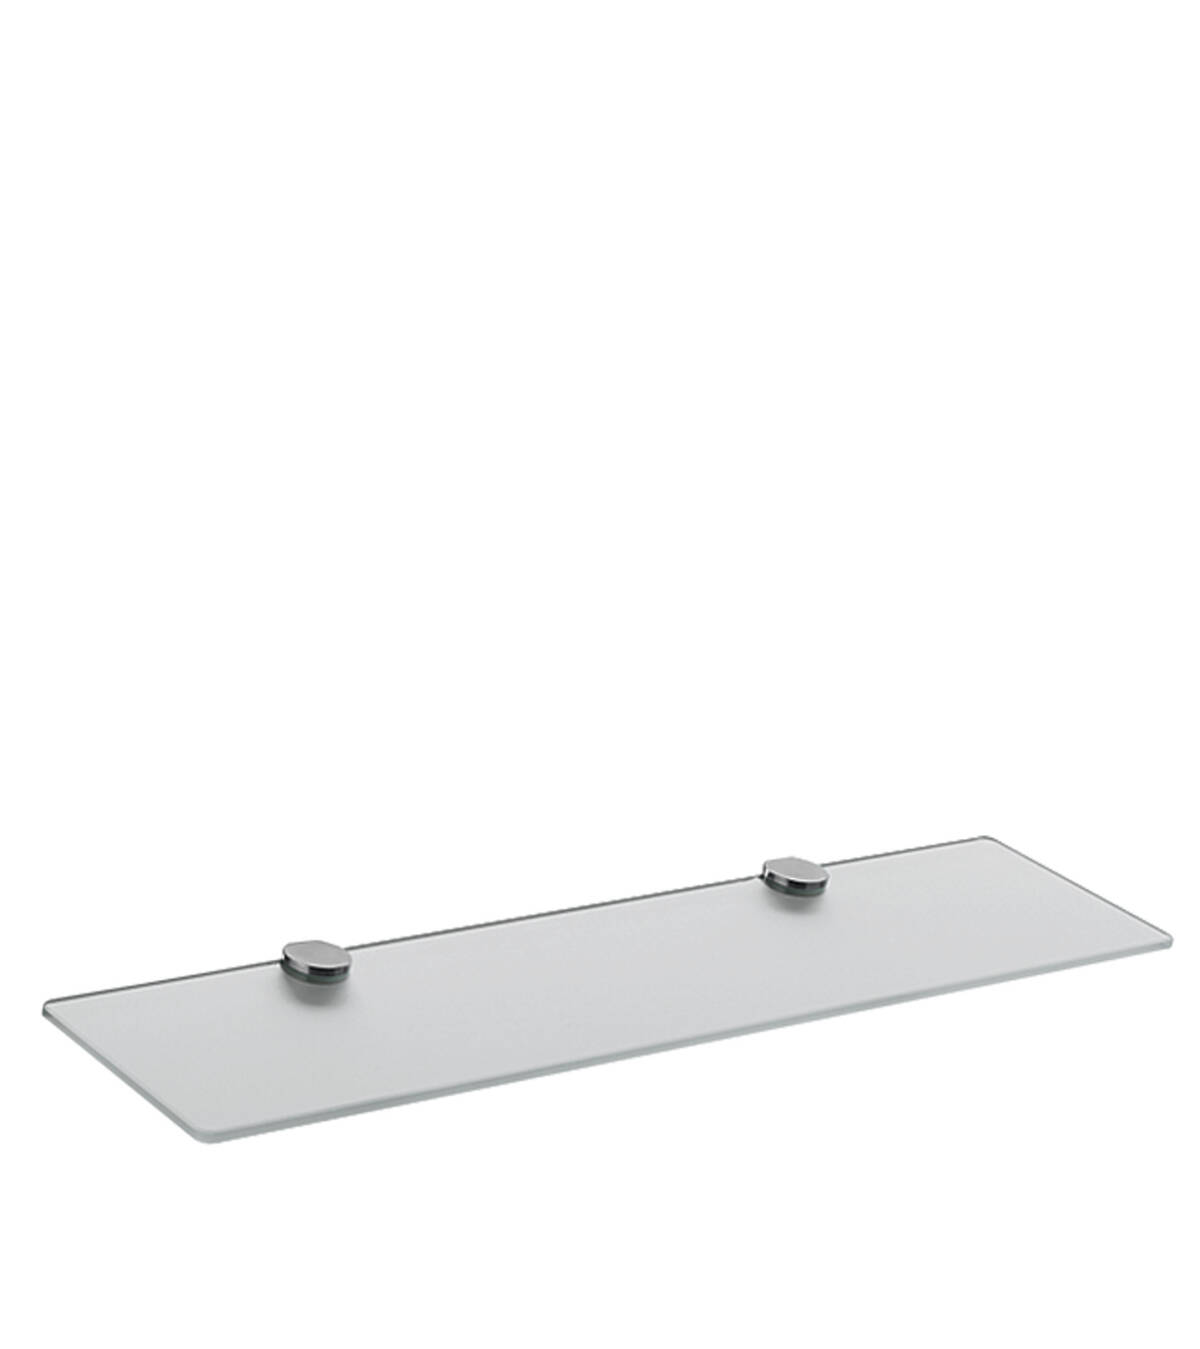 Glass shelf, Polished Gold Optic, 41550990